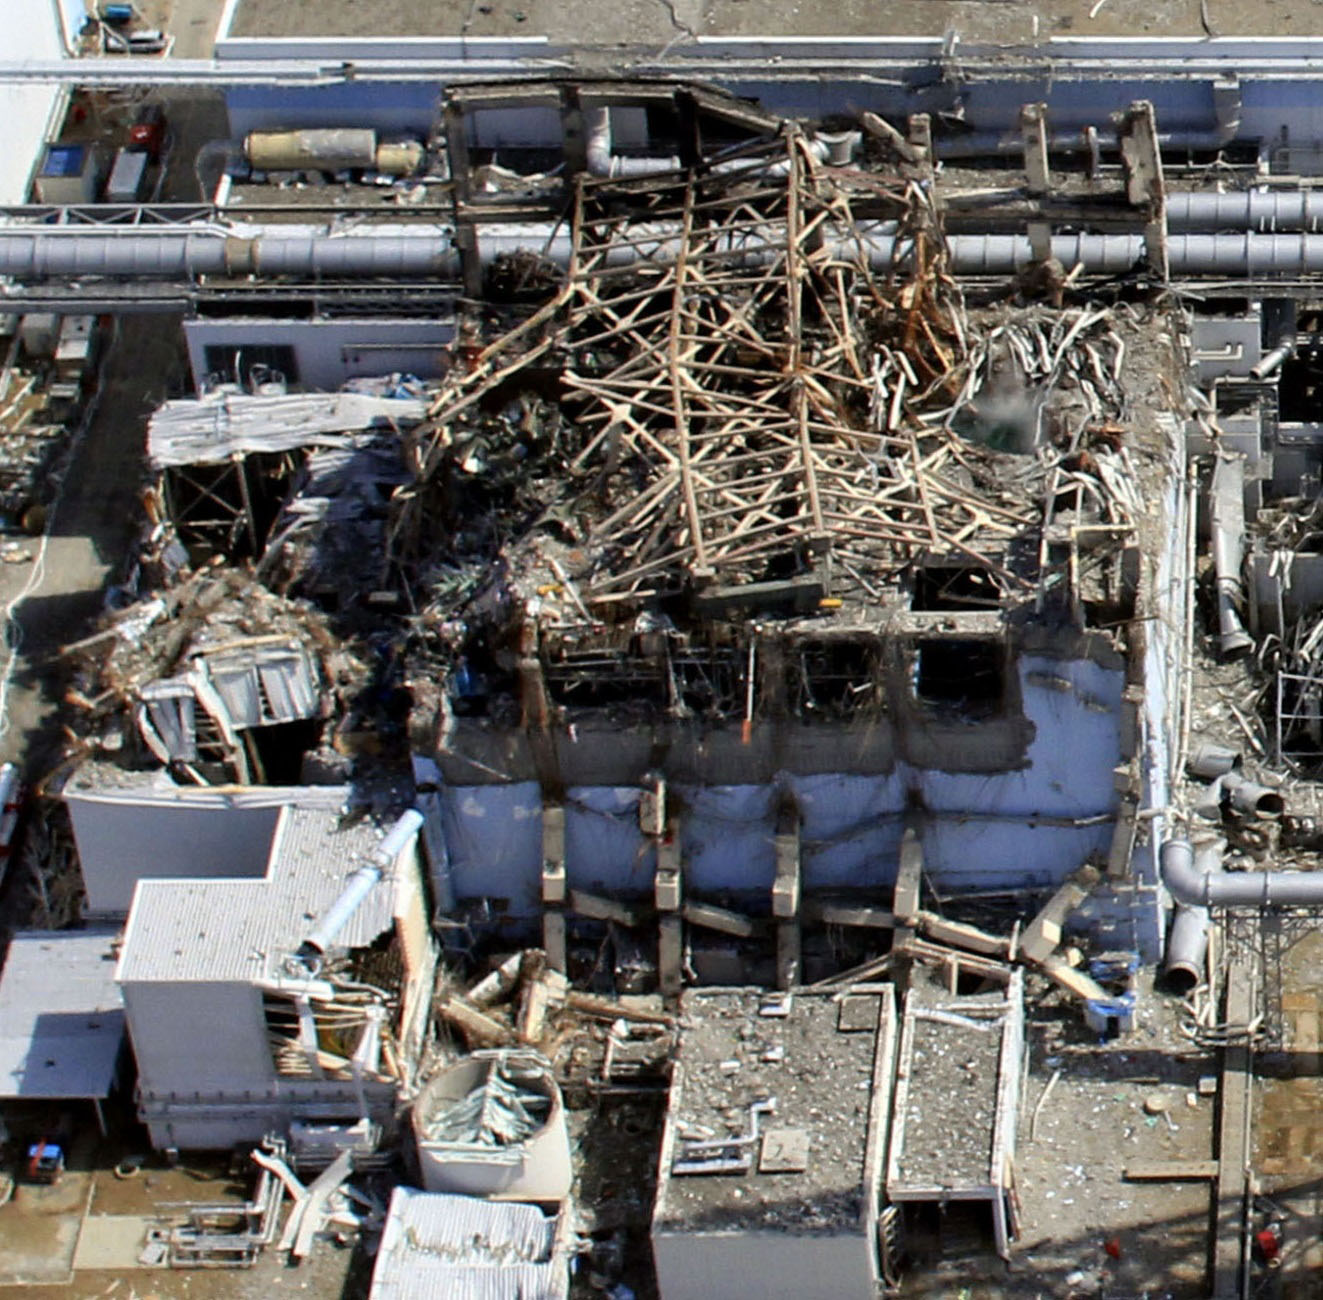 The mangled remains of the No. 3 reactor building at the Fukushima No. 1 power plant are shown on March 24, 2011, after a massive hydrogen explosion. | AIR PHOTO SERVICE/KYODO